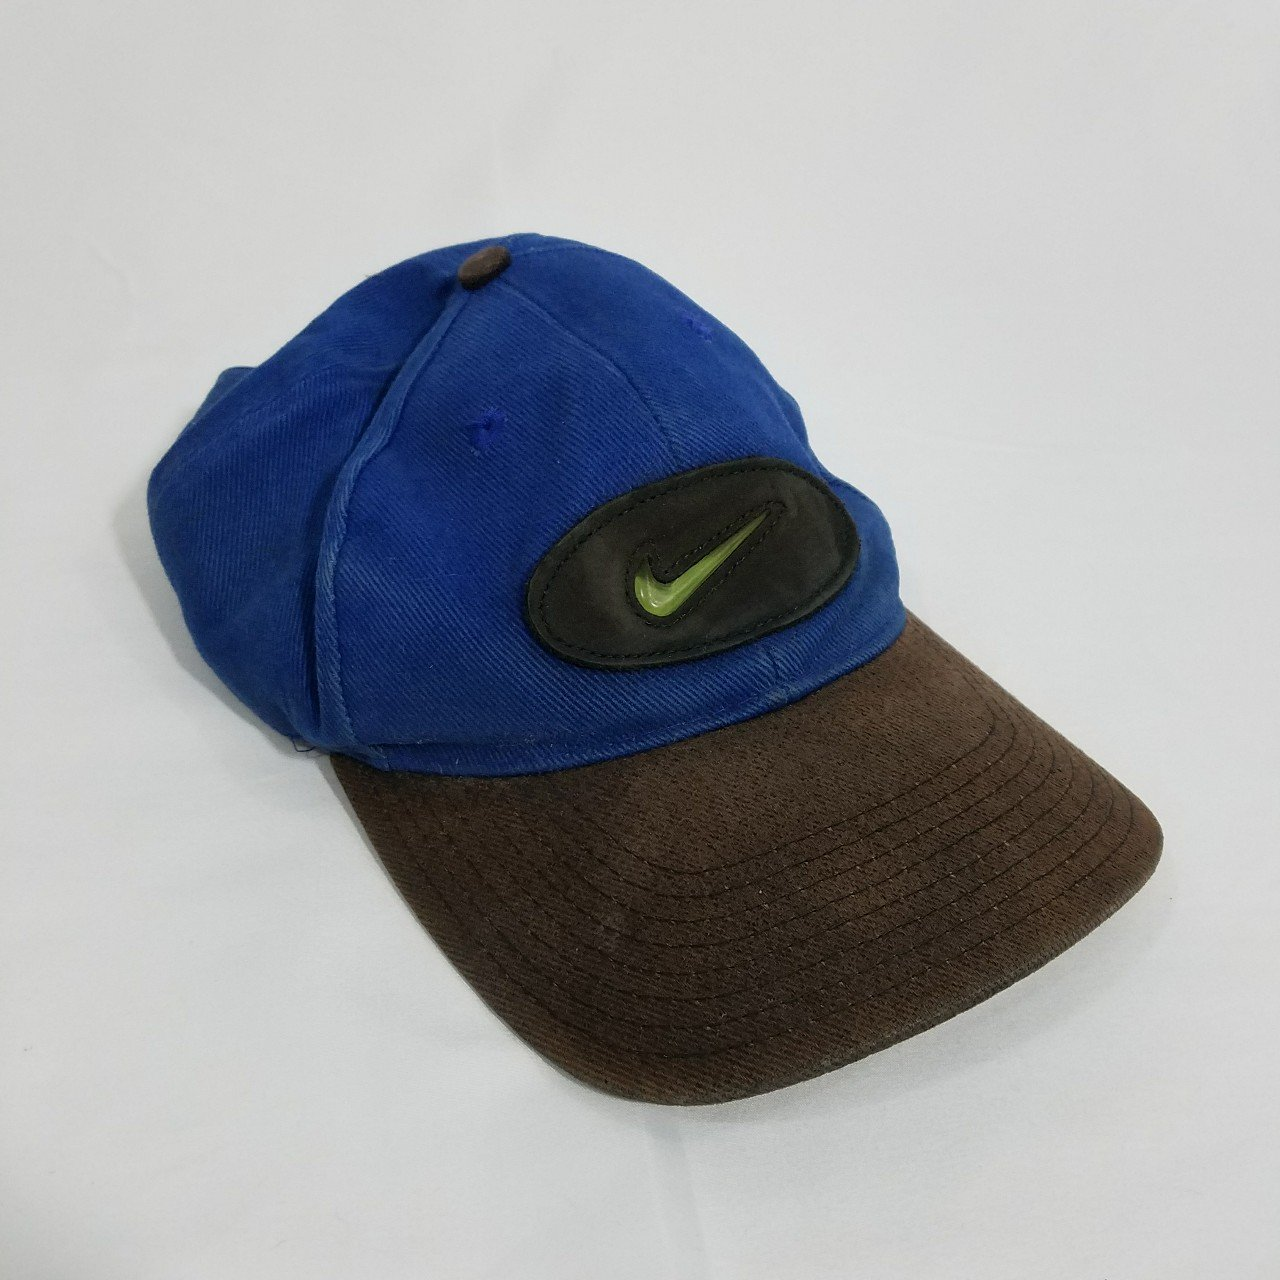 Vintage Nike buckle strap hat in great condition. This hat - Depop 673c6ed0d2b